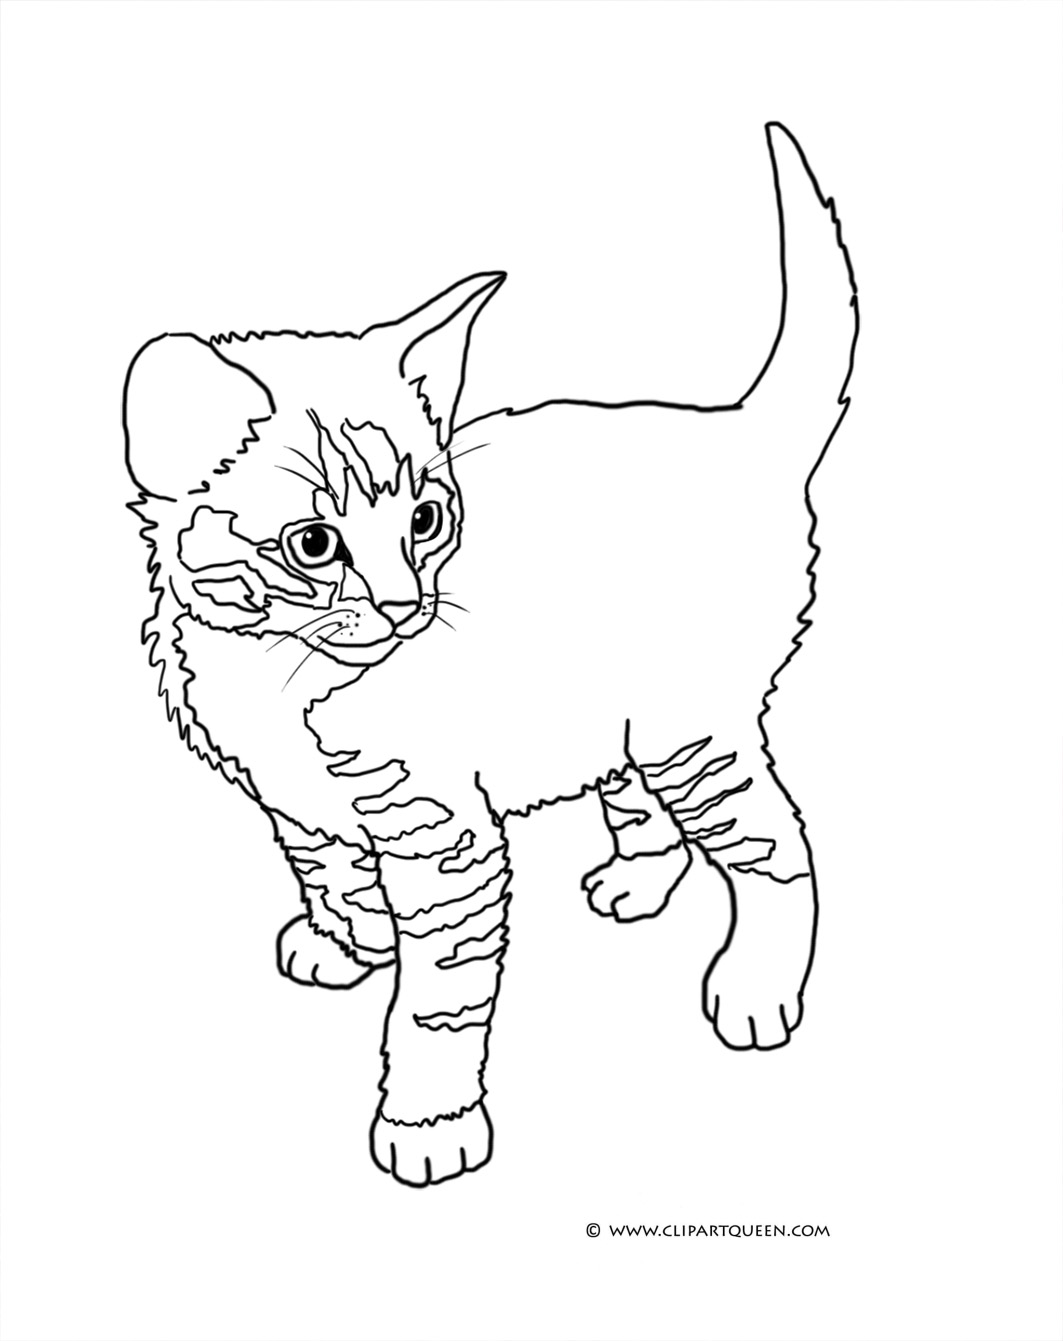 Coloring Sheet Two Kittens Playing Cute Little Kitten Standing